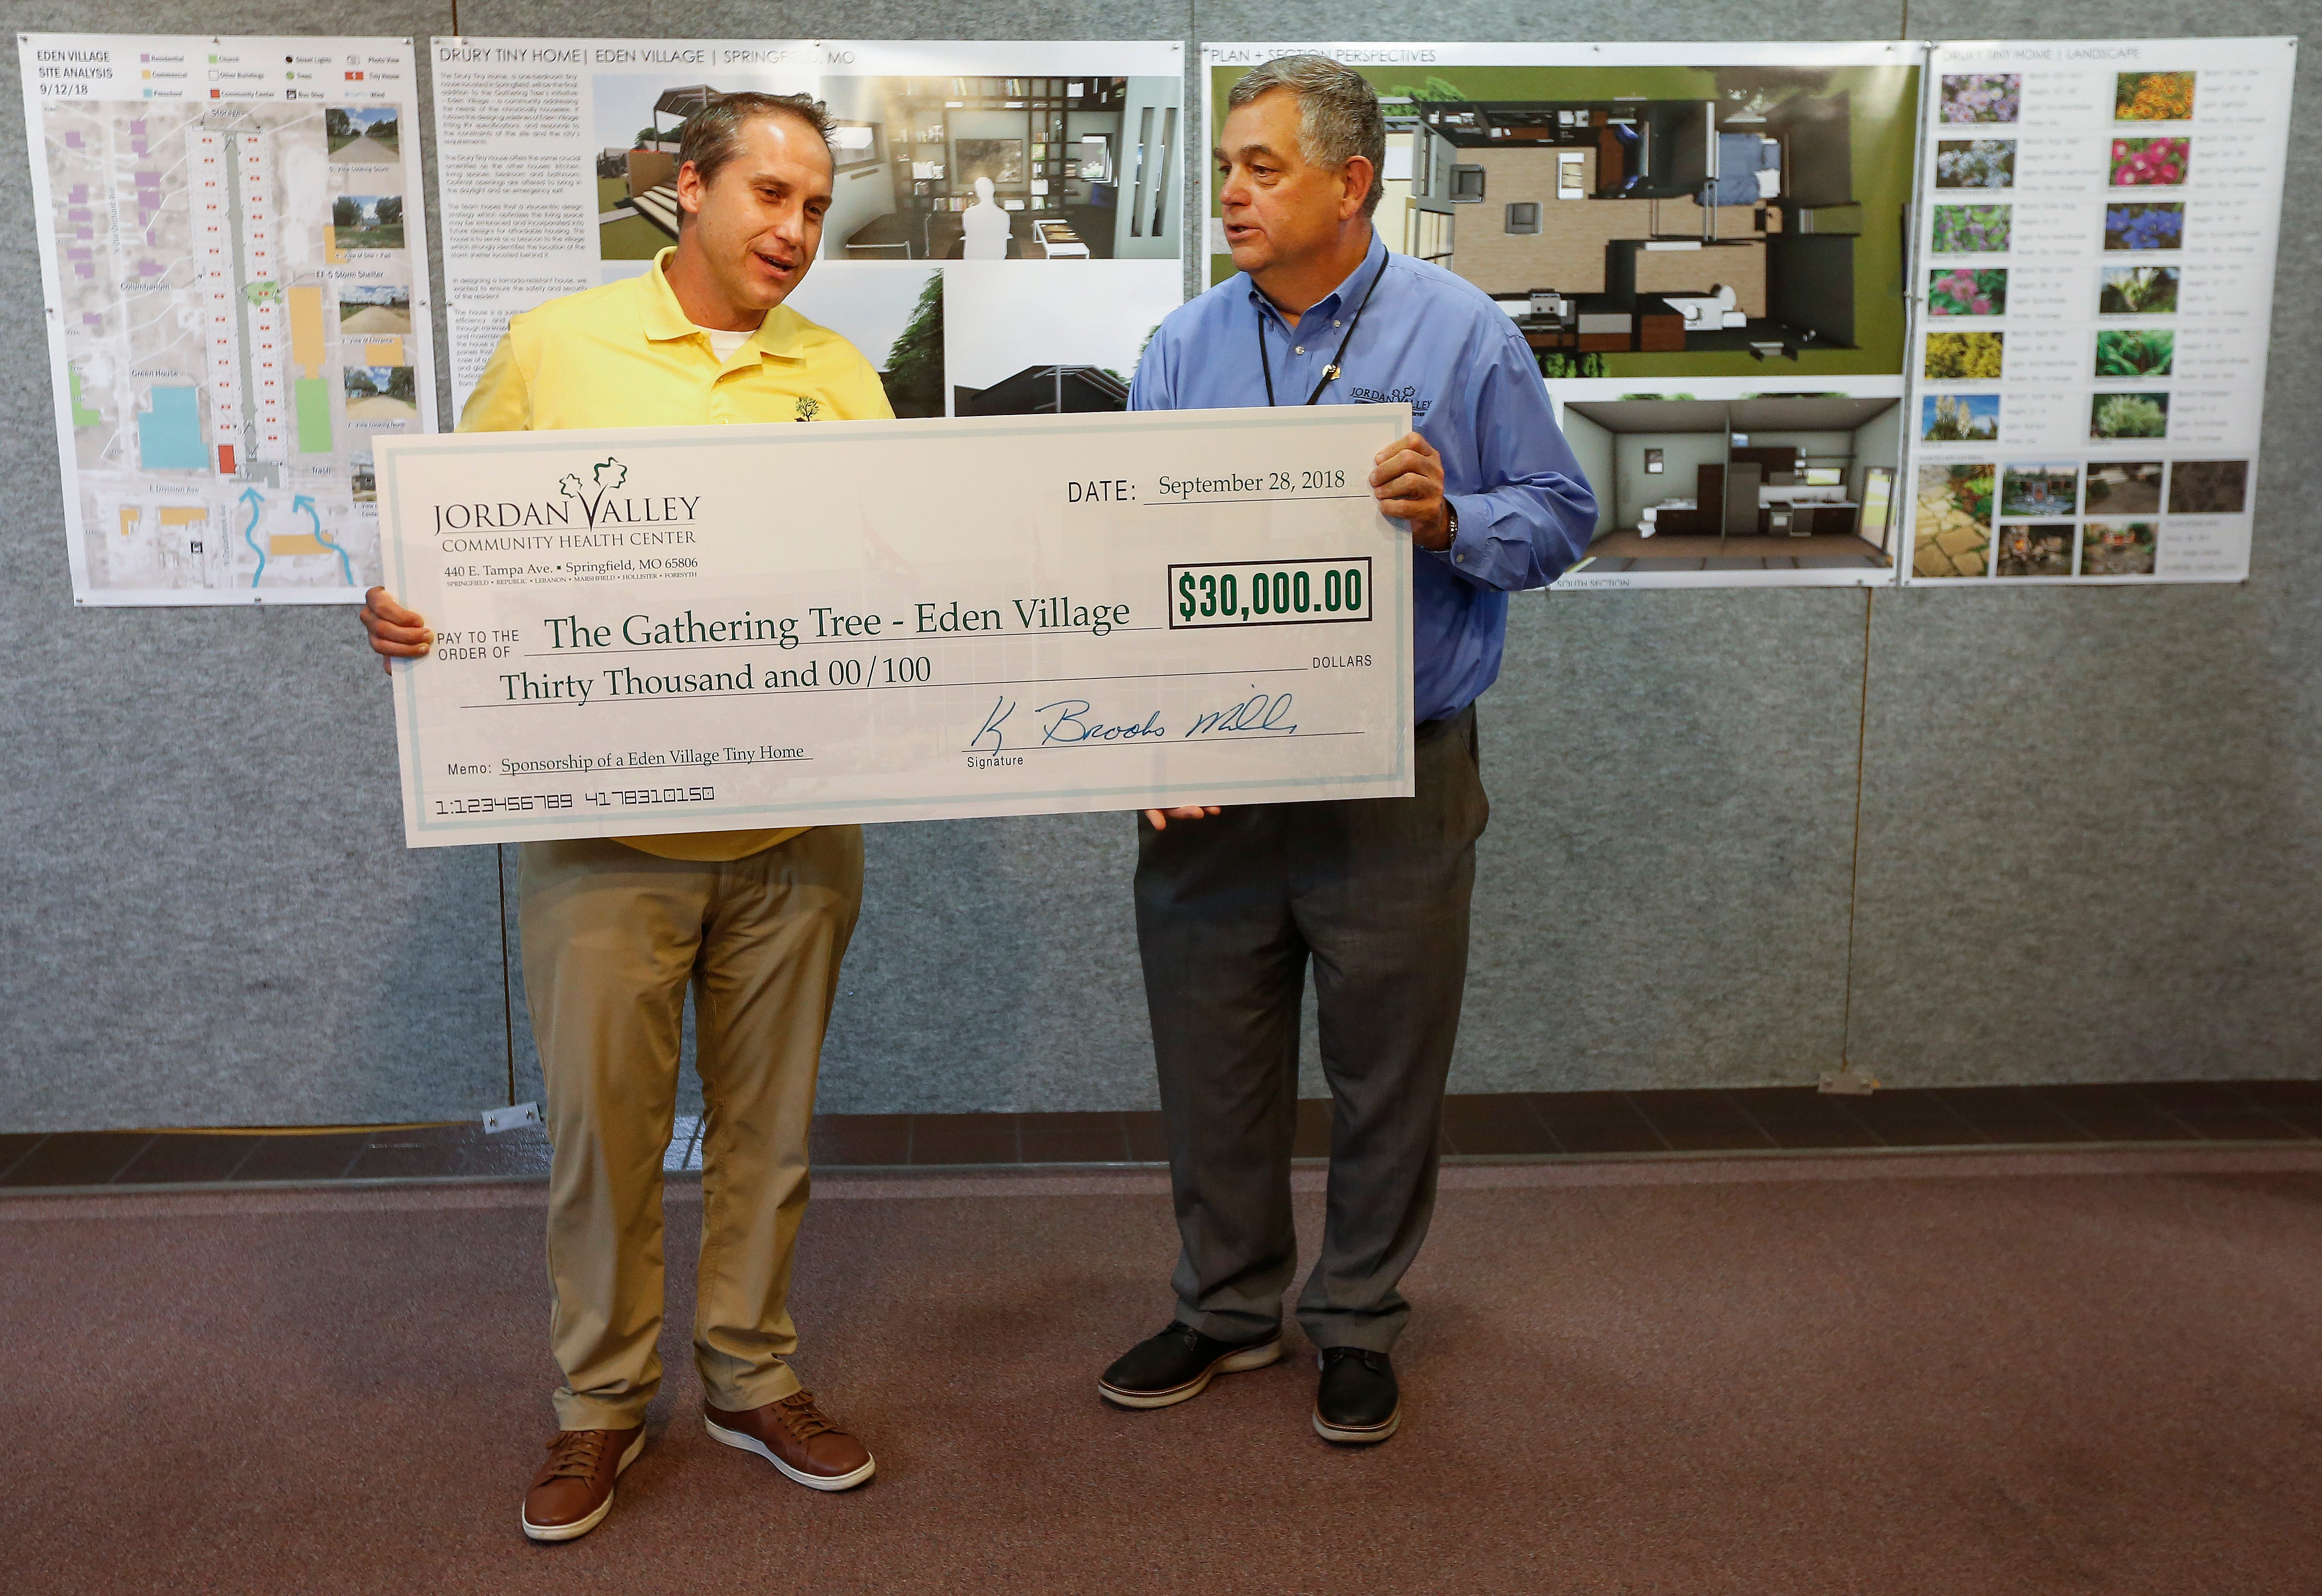 Nate Schlueter, left, the COO of Eden Village, accepts a check presented to him by K. Brooks Miller, President and CEO of Jordan Valley Community Health Center, that will help pay for the final tiny house in Eden Village.